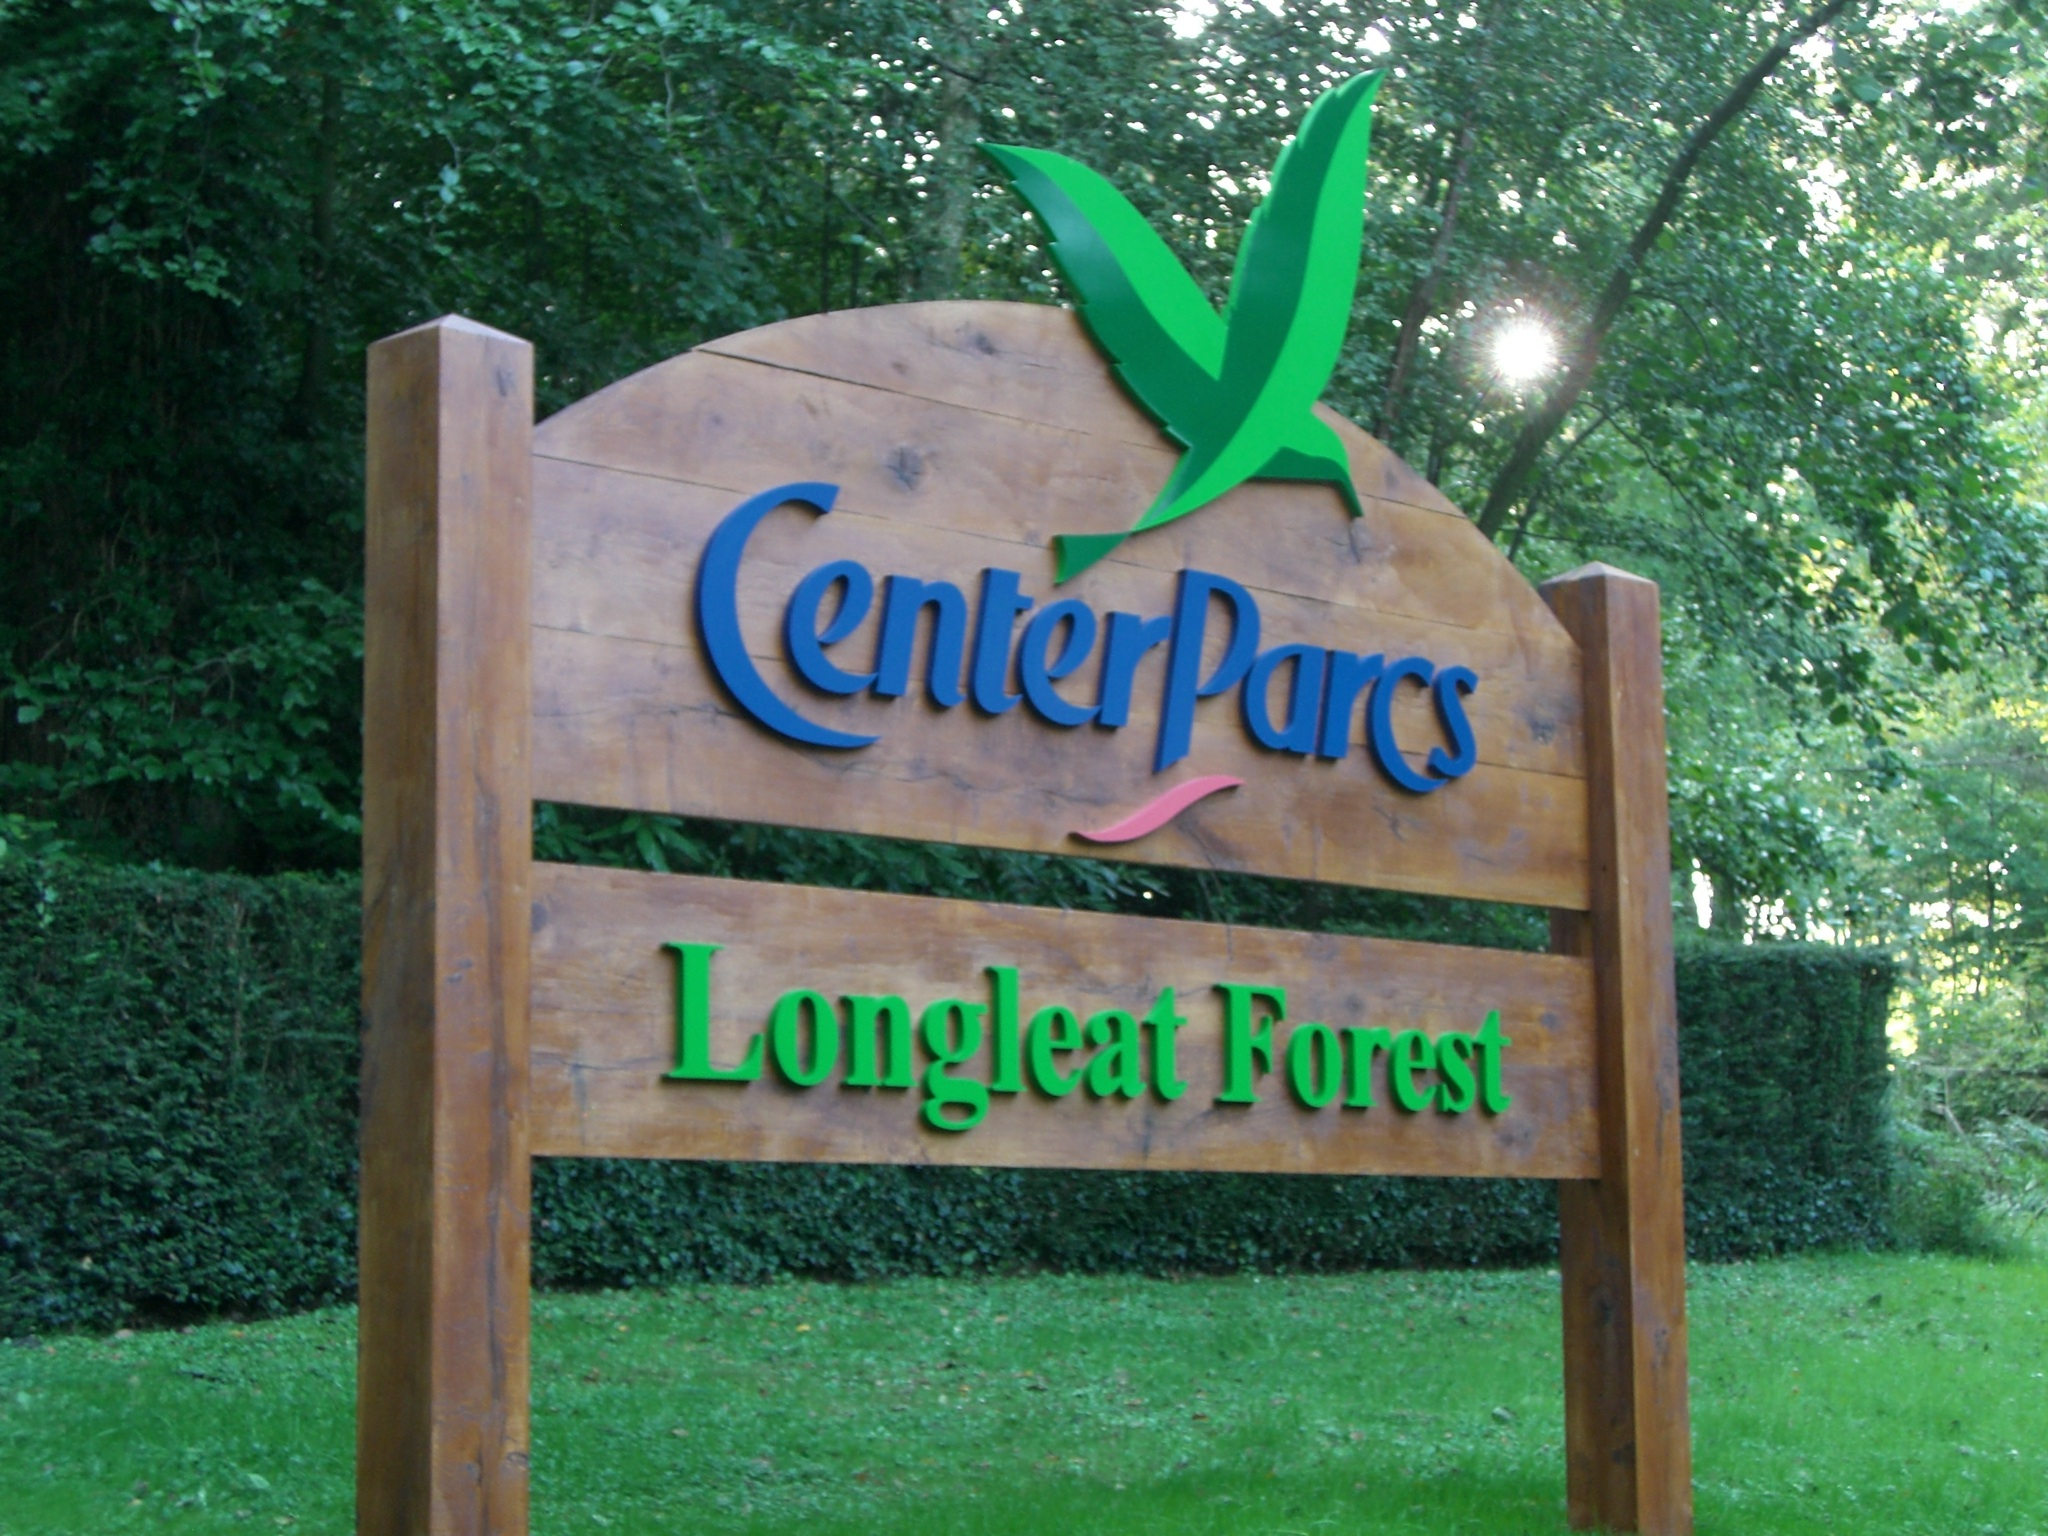 Centre Parcs sign